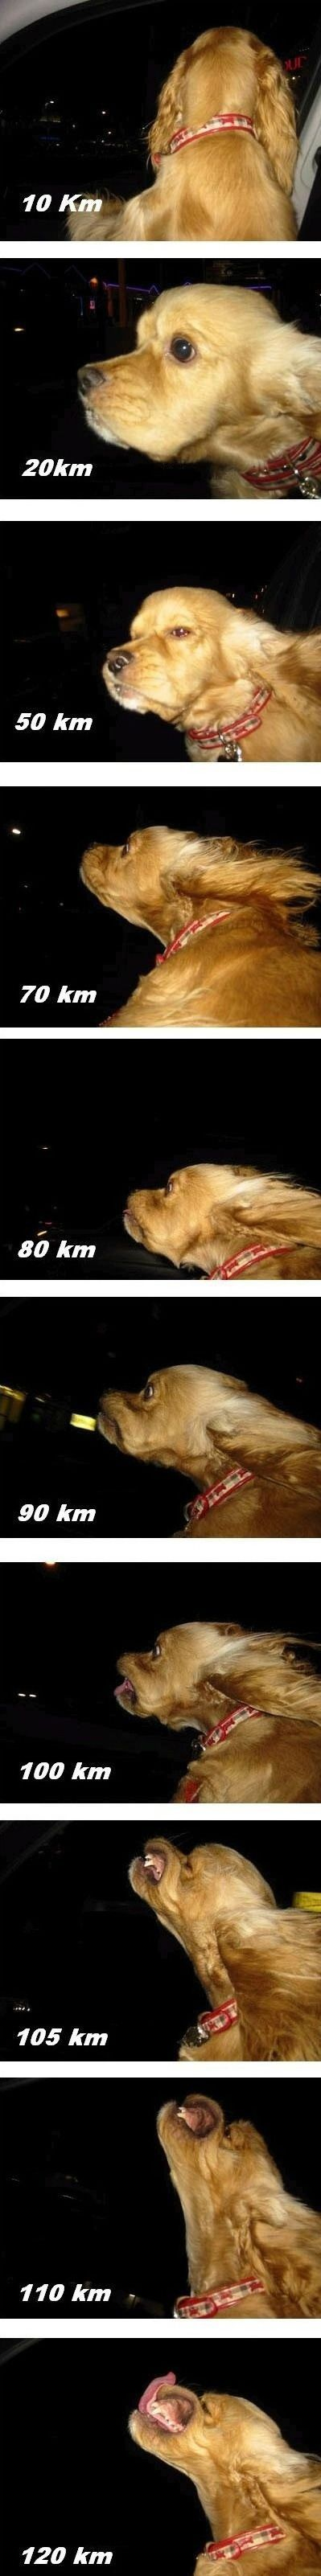 The dog speedometer.: Laughing So Hard, Window, Giggl, Too Funny, Funny Stuff, Cocker Spaniels, Dogs Speedomet, So Funny, Dogs Faces